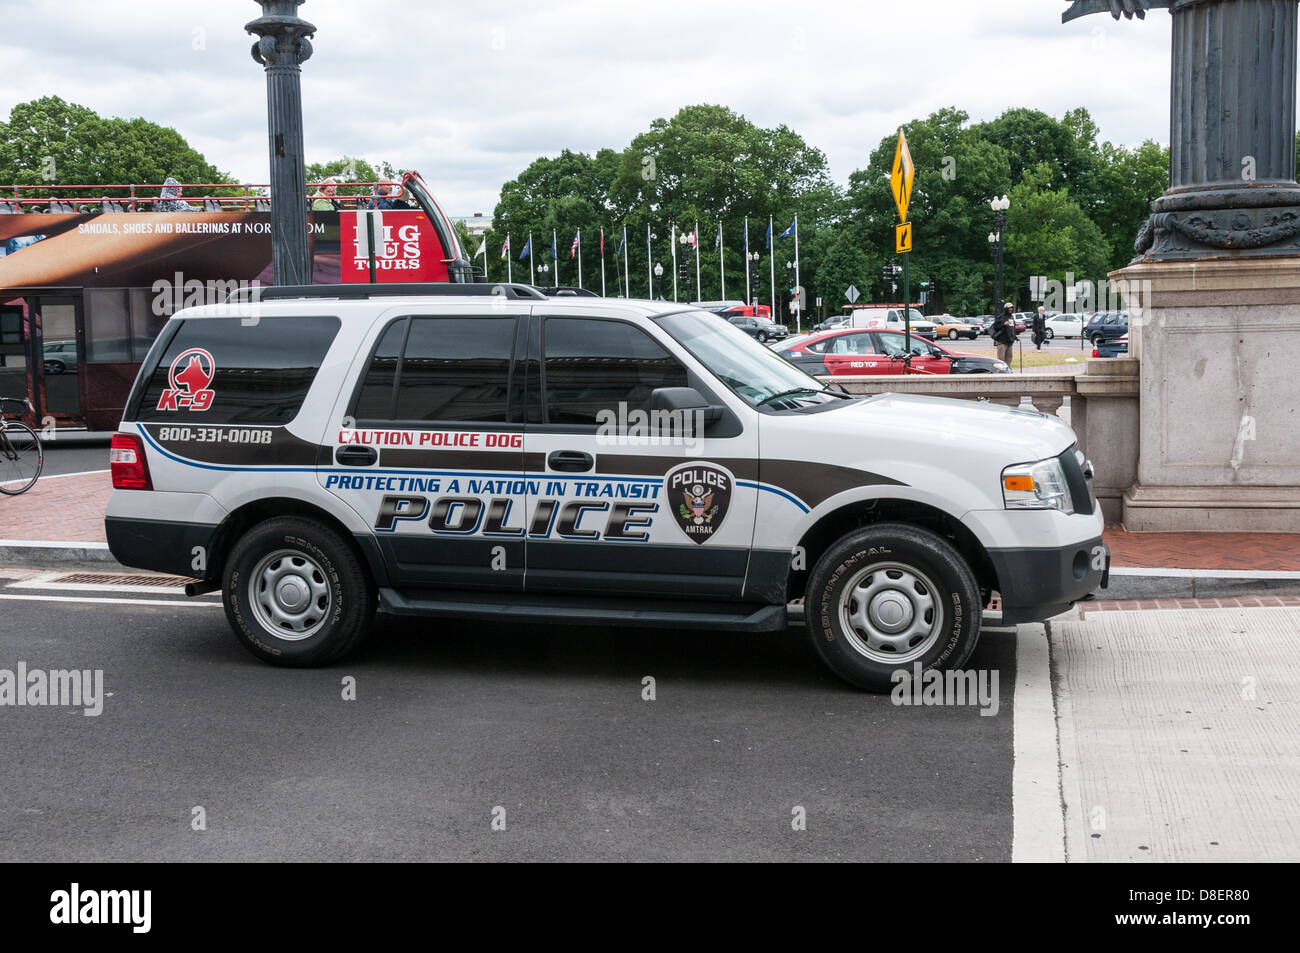 Amtrak police ford explorer police car union station for Washington dc department of motor vehicles